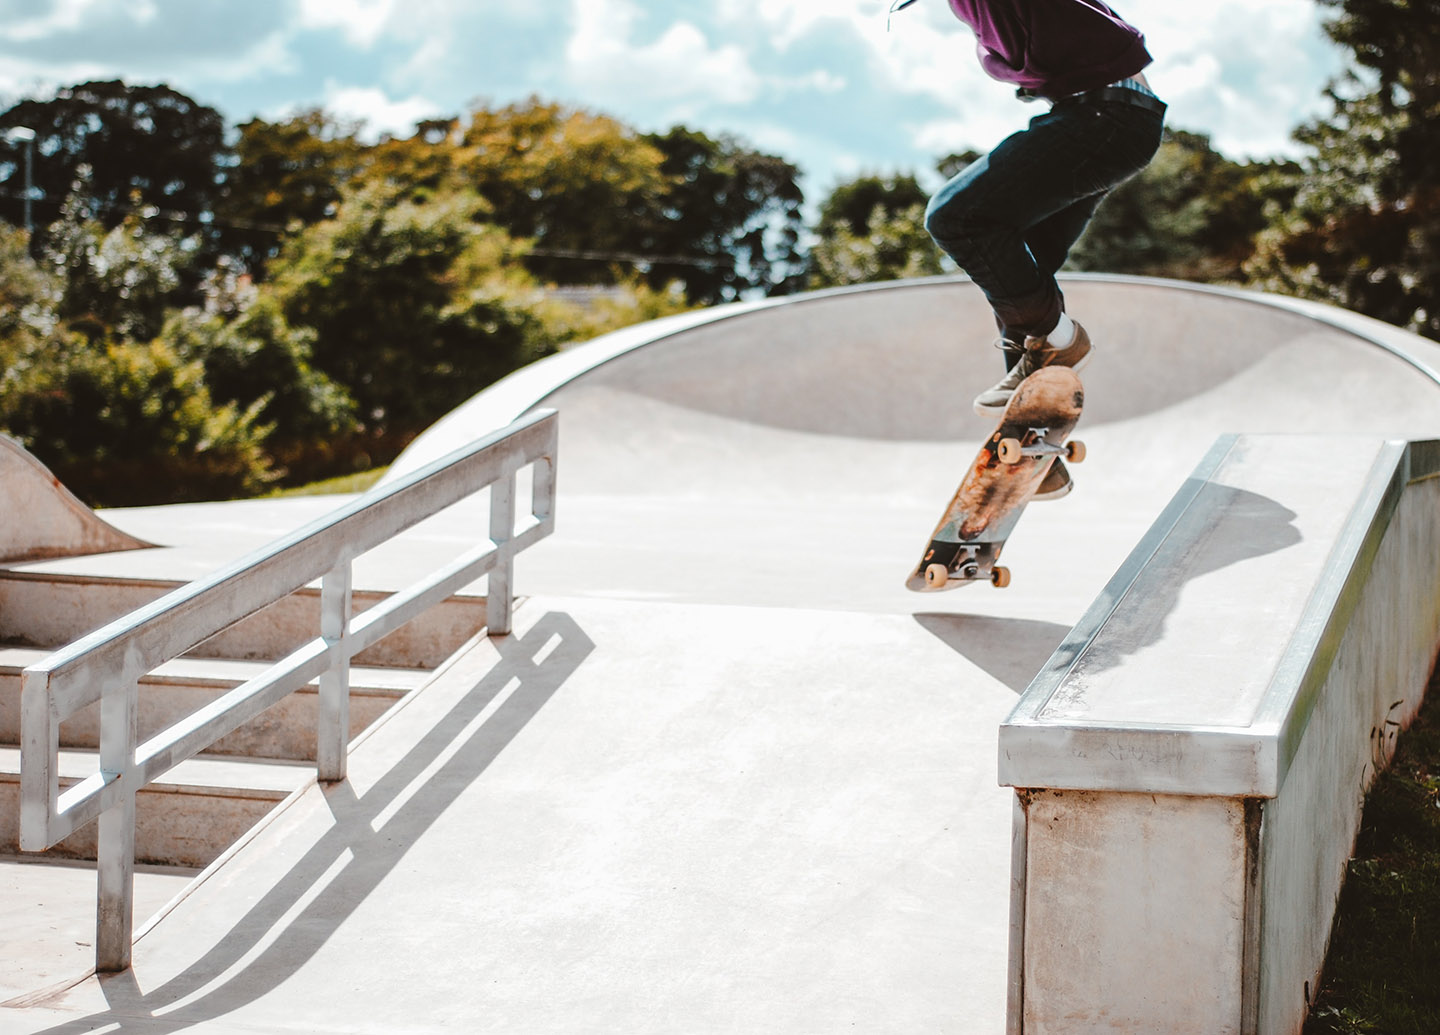 Best Skate Park in and around Tokyo